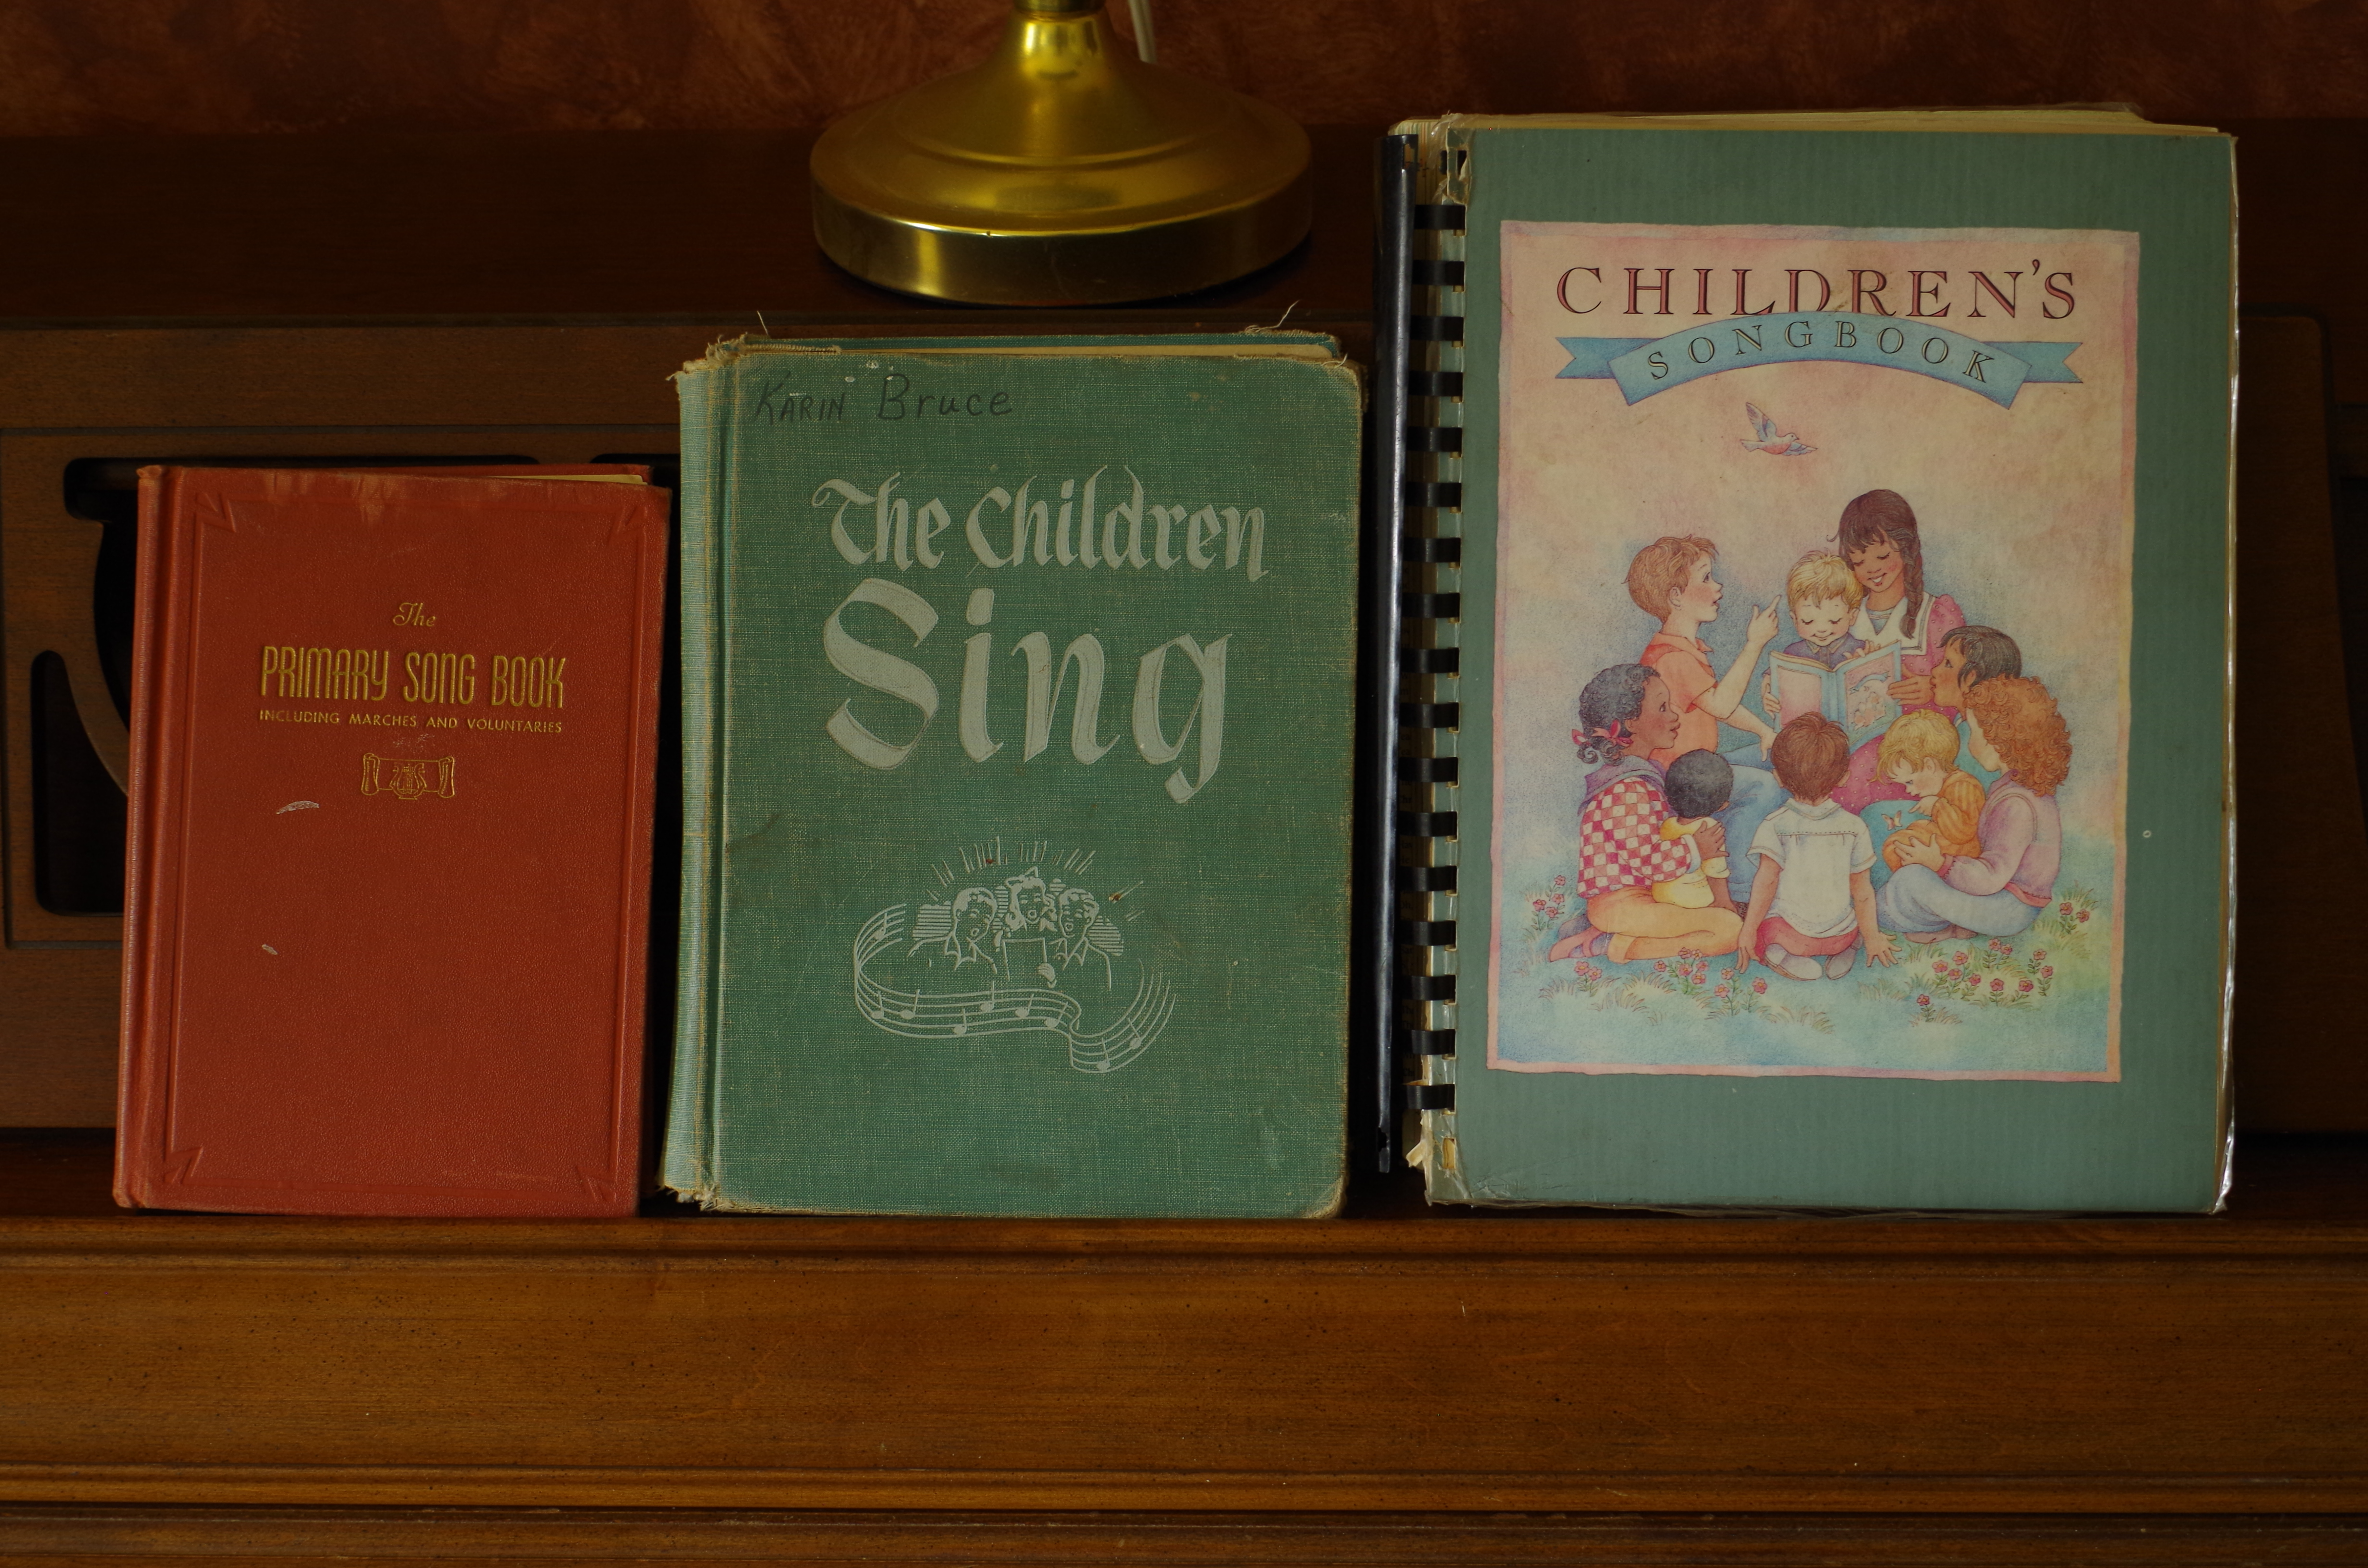 Various publications of the Church's songs for children, including the current Children's Songbook. The Church has announced it is revising the hymnbook and children's songbook and invites members to participate.